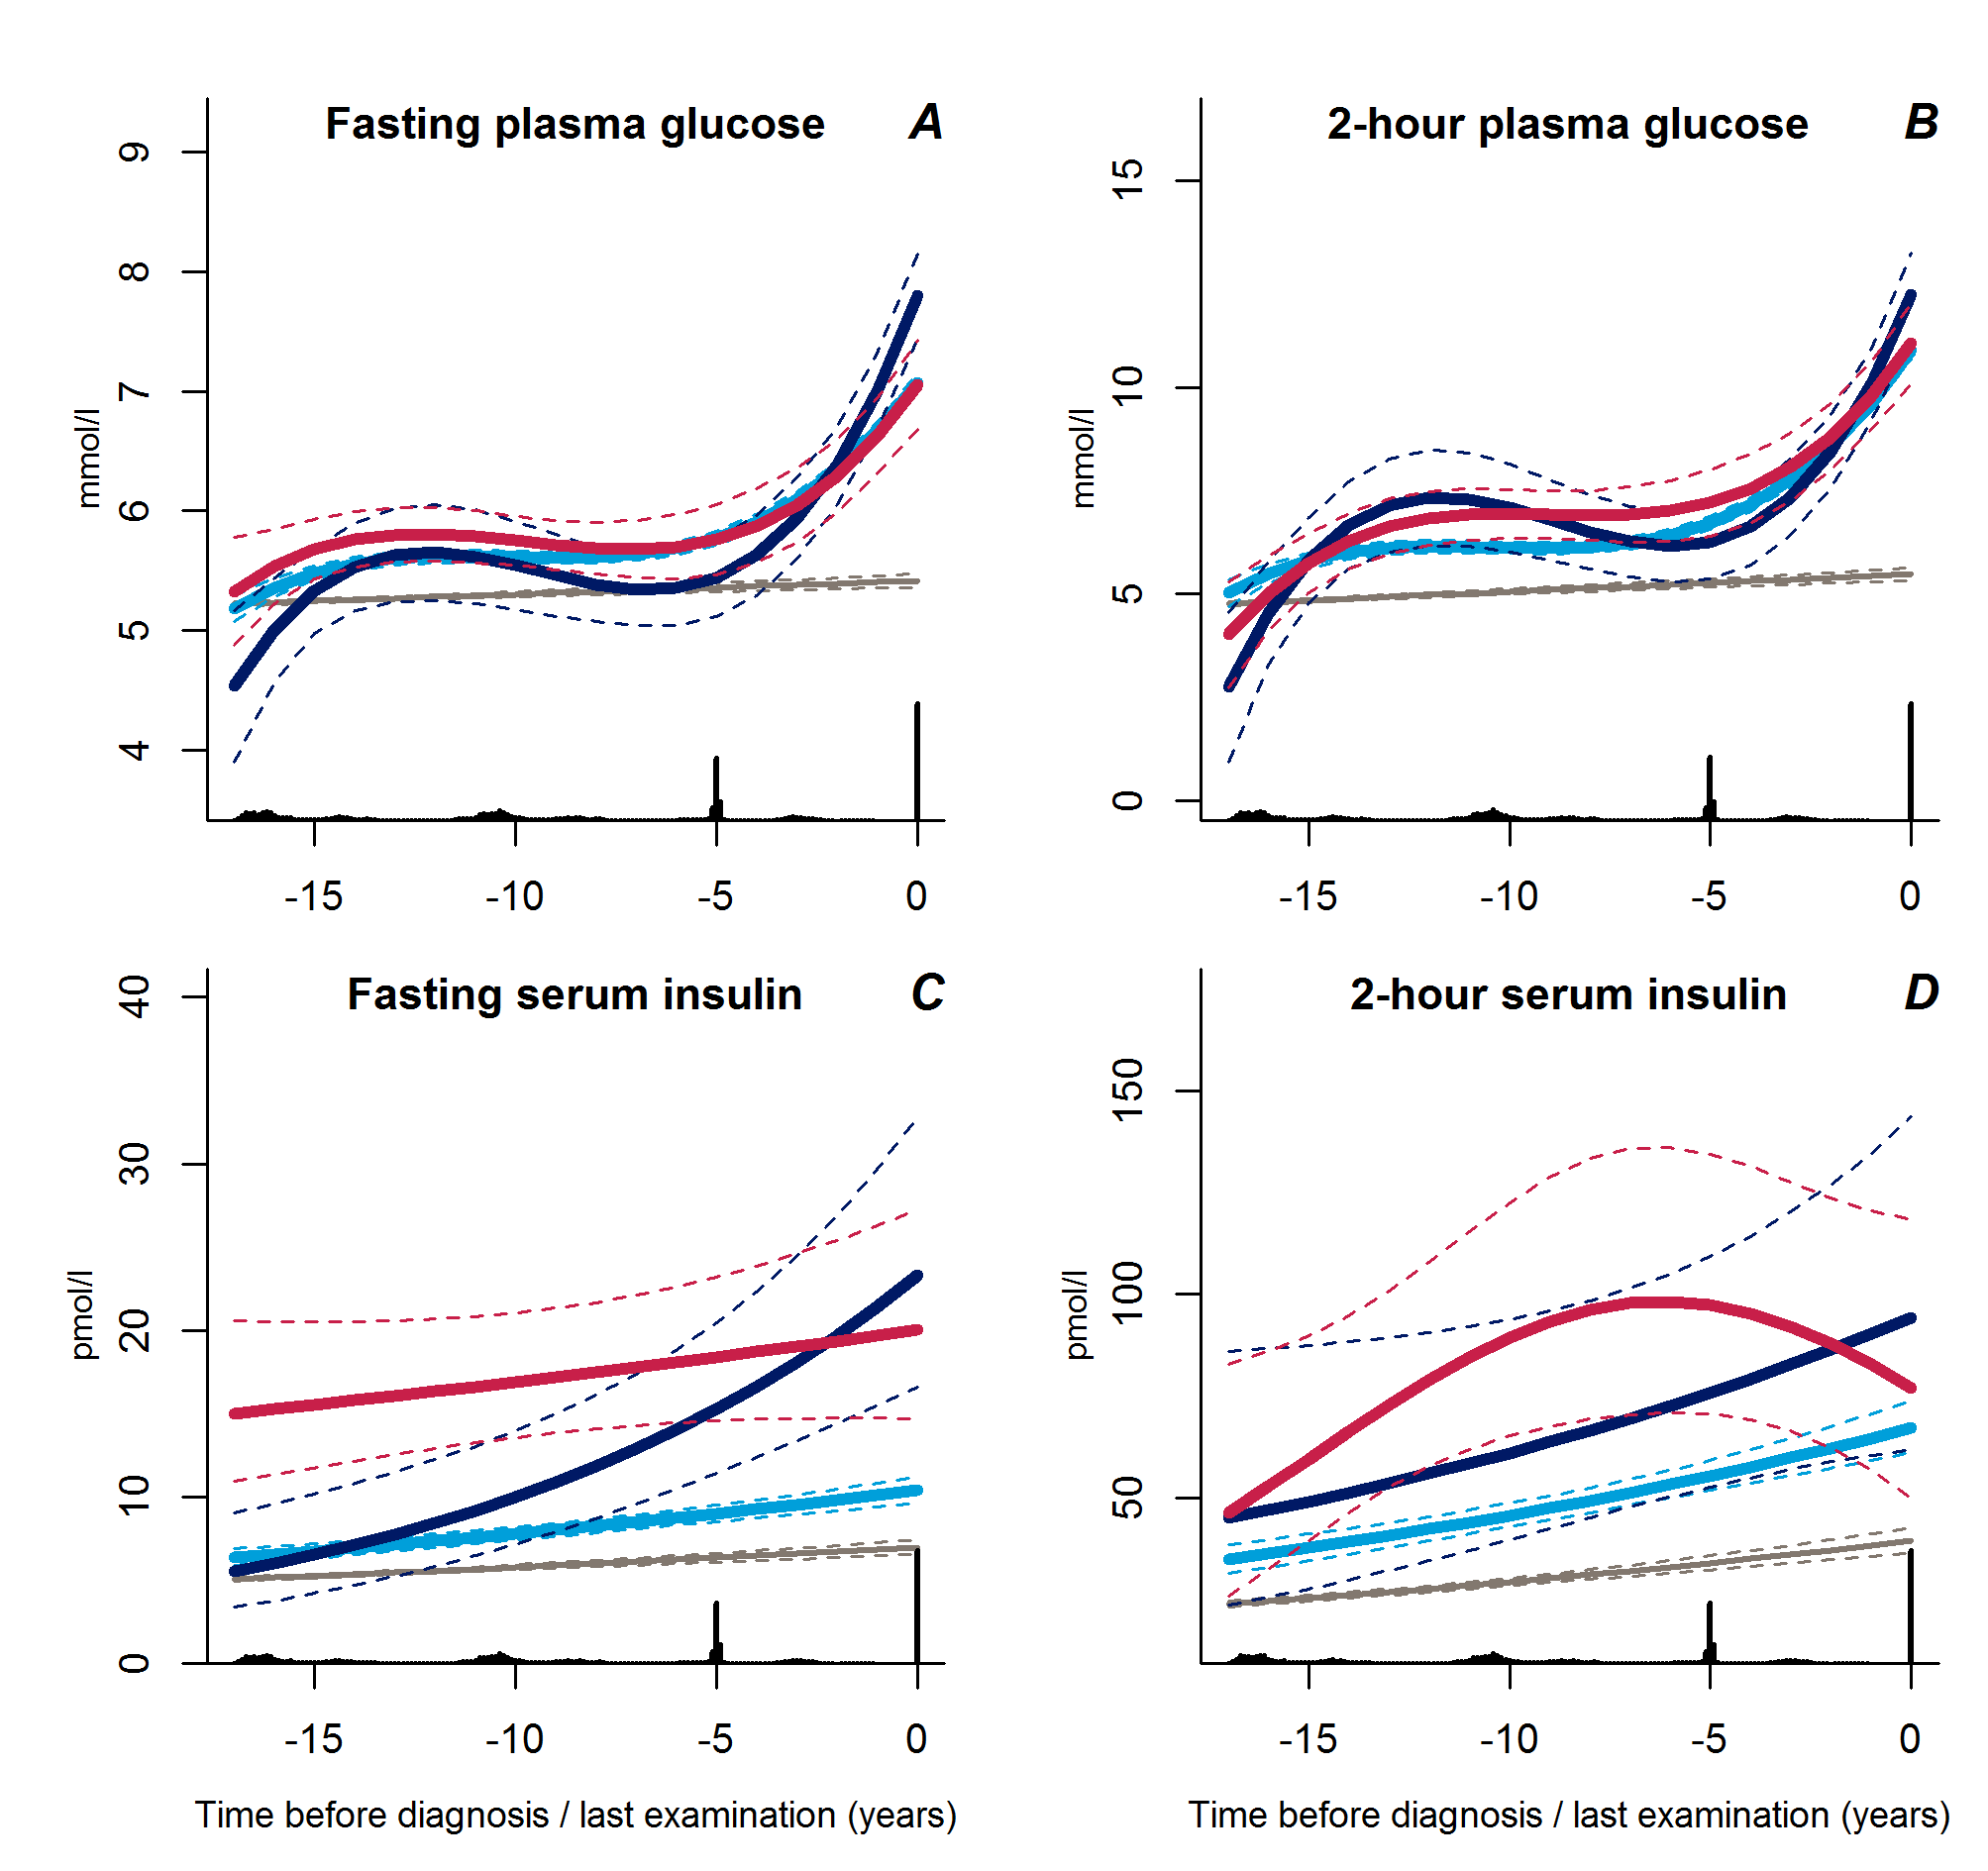 Trajectories for a hypothetical male of 60 years at time 0 of fasting plasma glucose (A), 2-hour plasma glucose (B), fasting serum insulin (C), and 2-hour serum insulin (D) from 18 years before time of diagnosis/last examination.